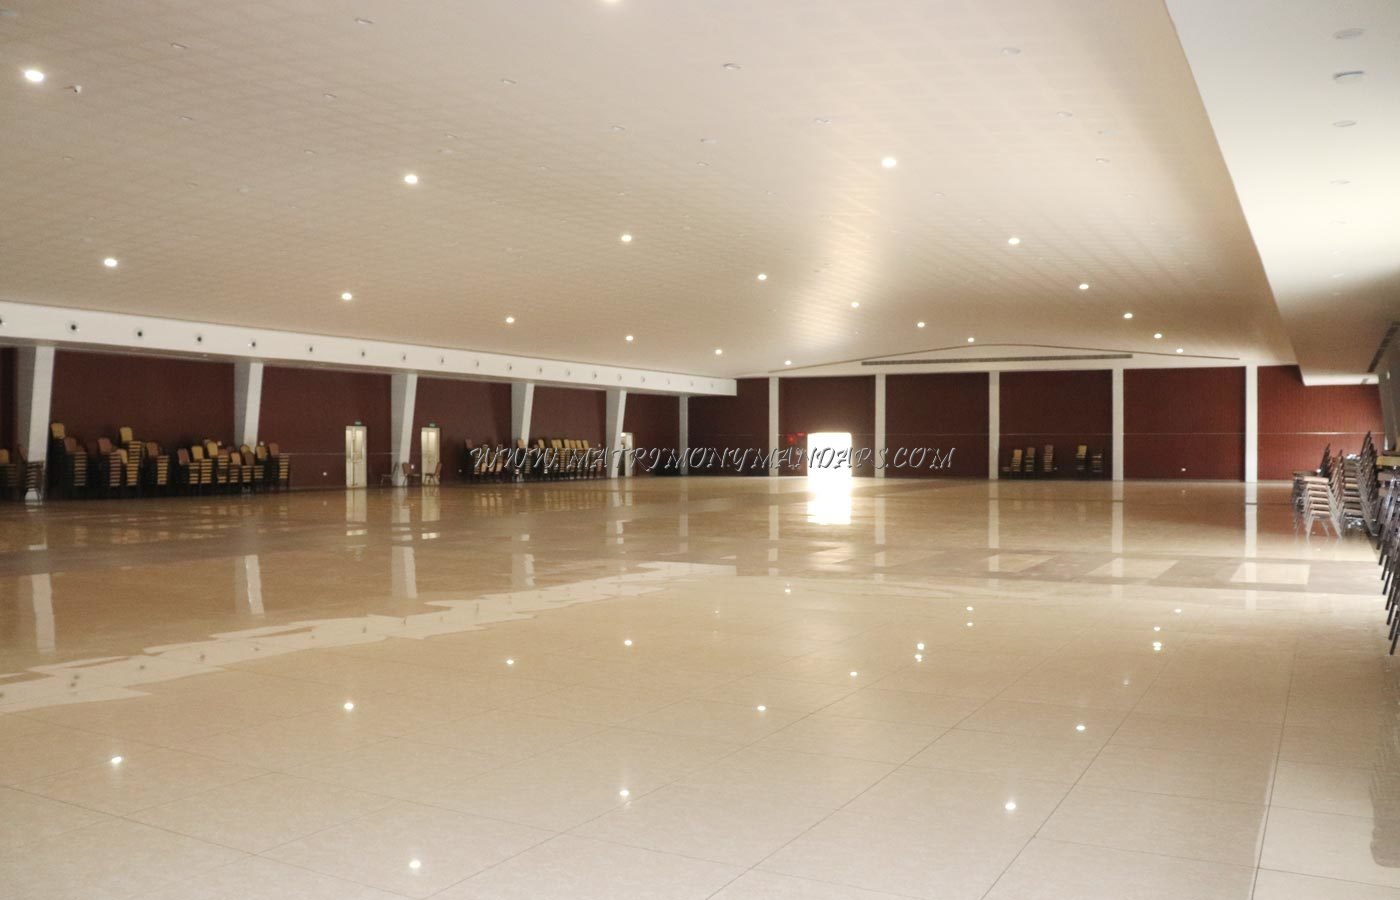 Find the availability of the Zamra International Convention And Exhibition Centre (A/C) in Kalamassery, Kochi and avail special offers